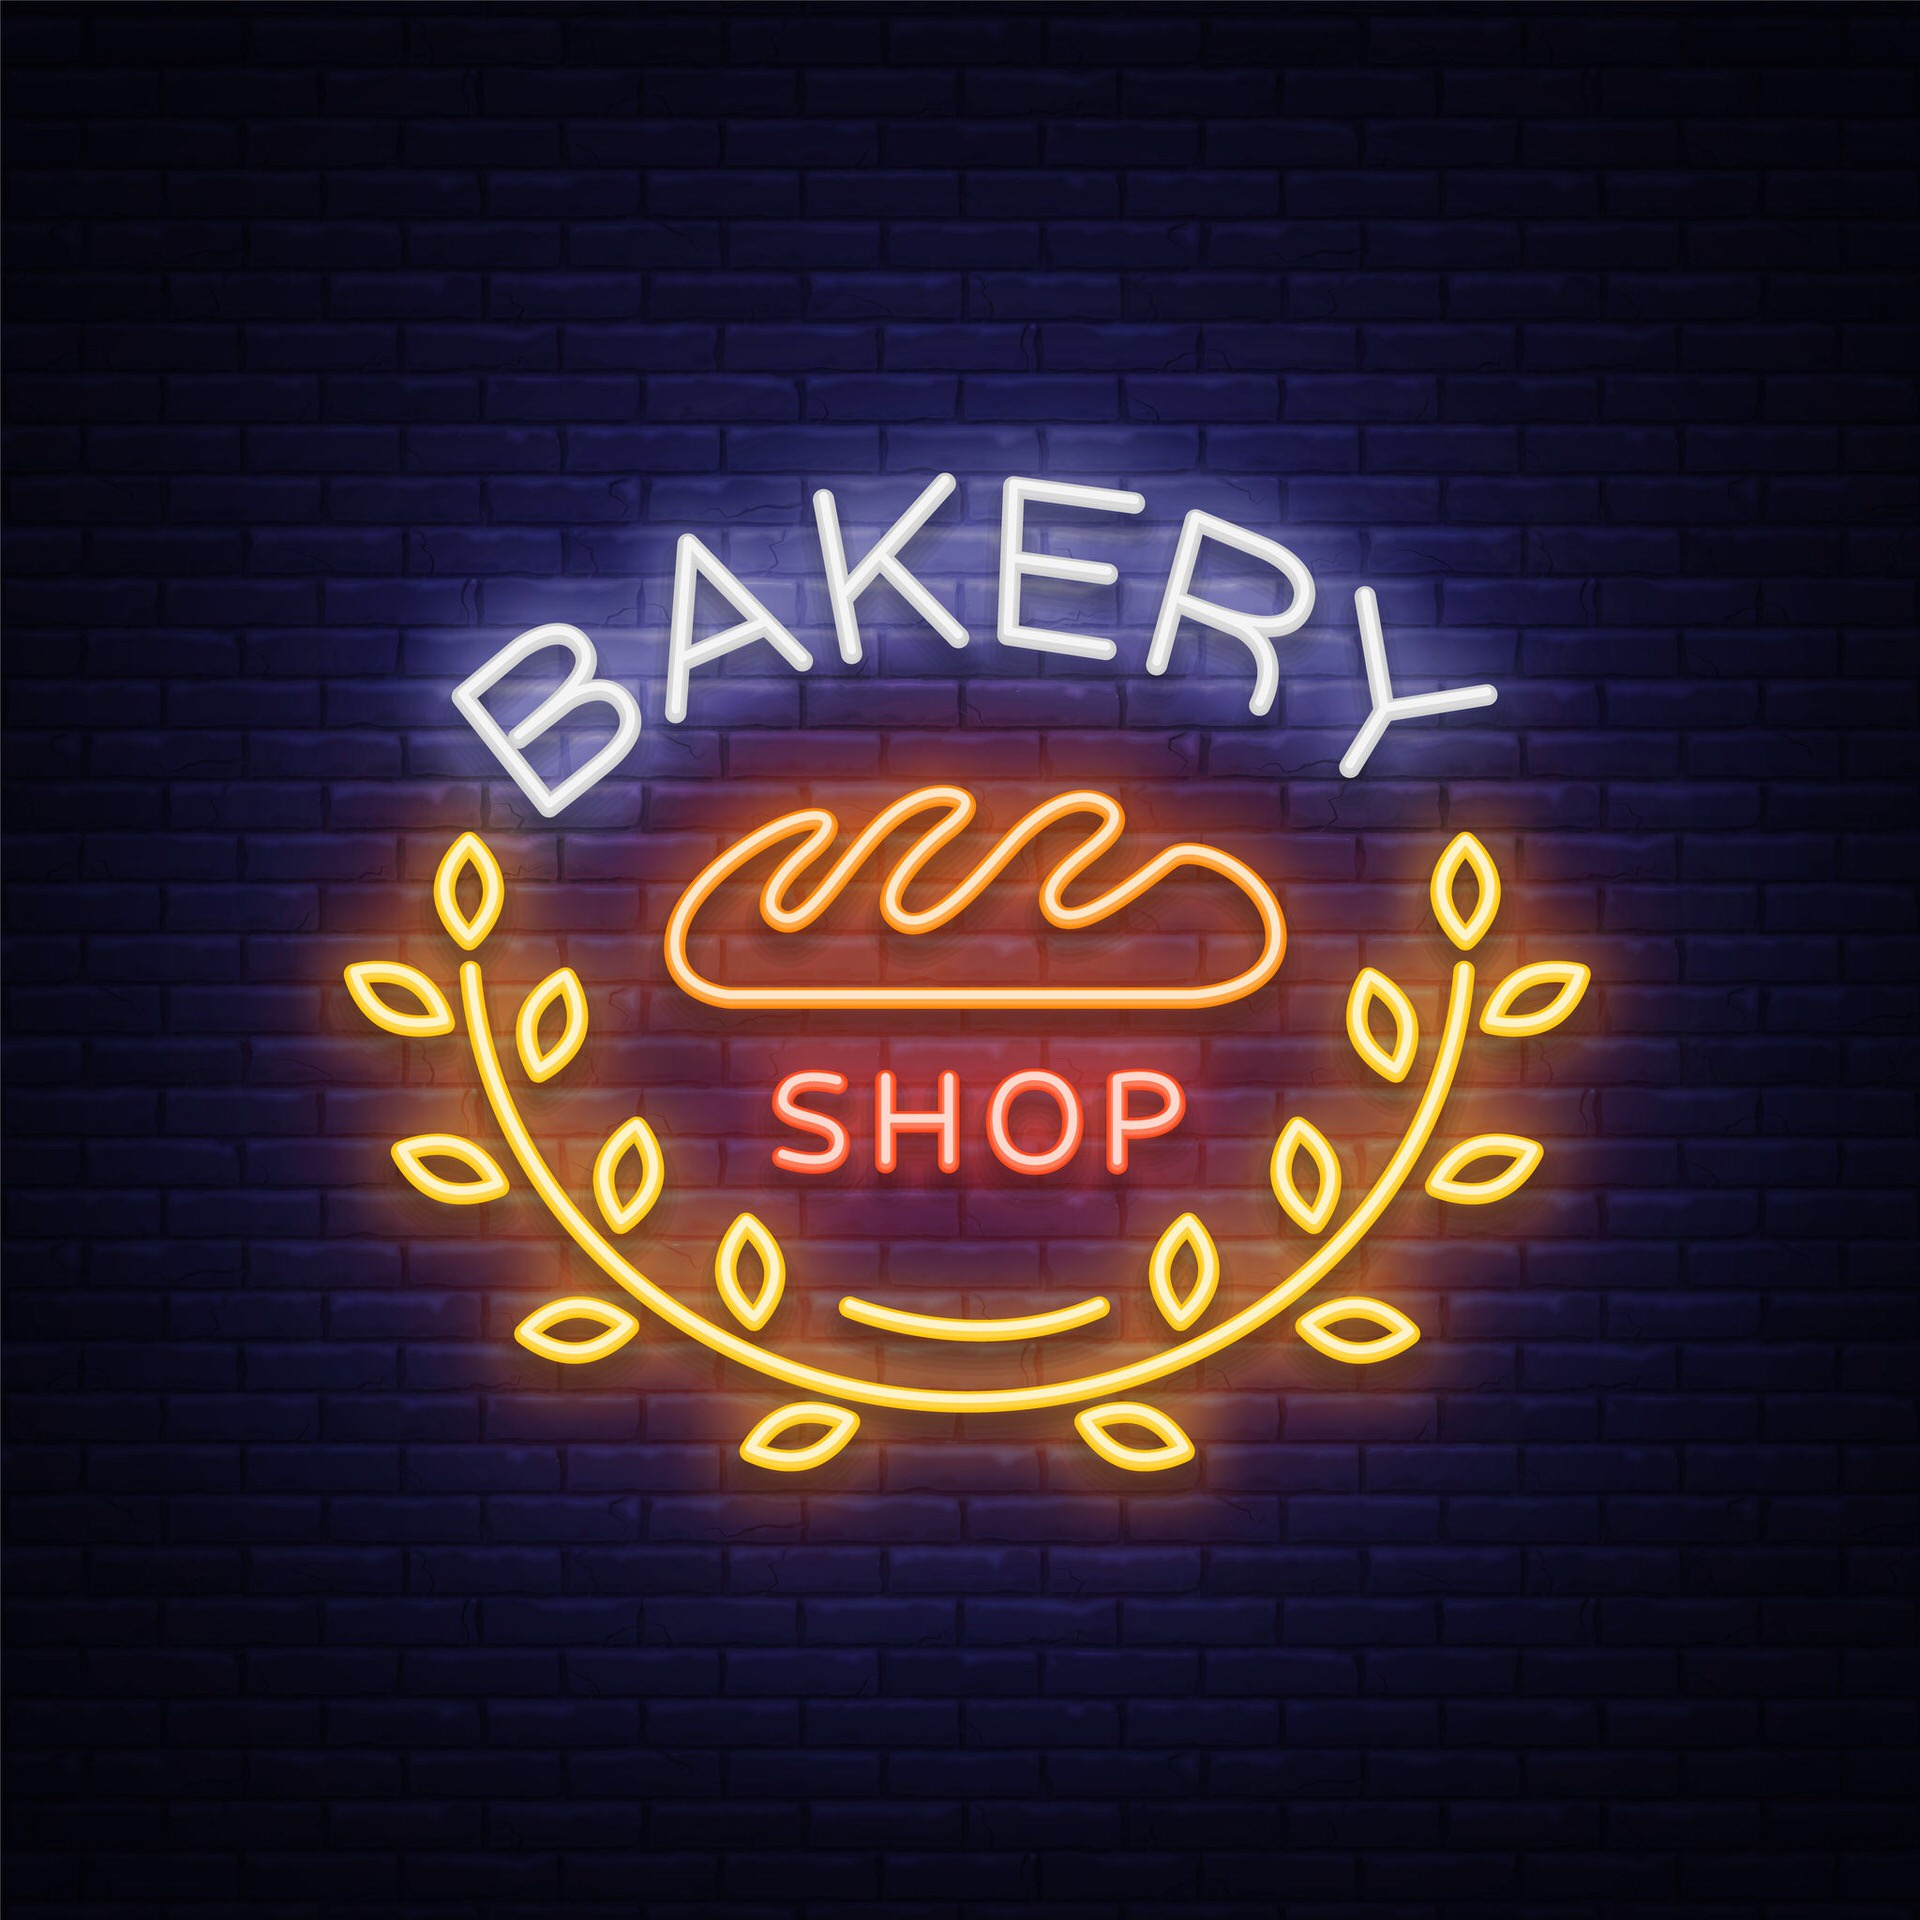 Bakery/ Sandwich Shop